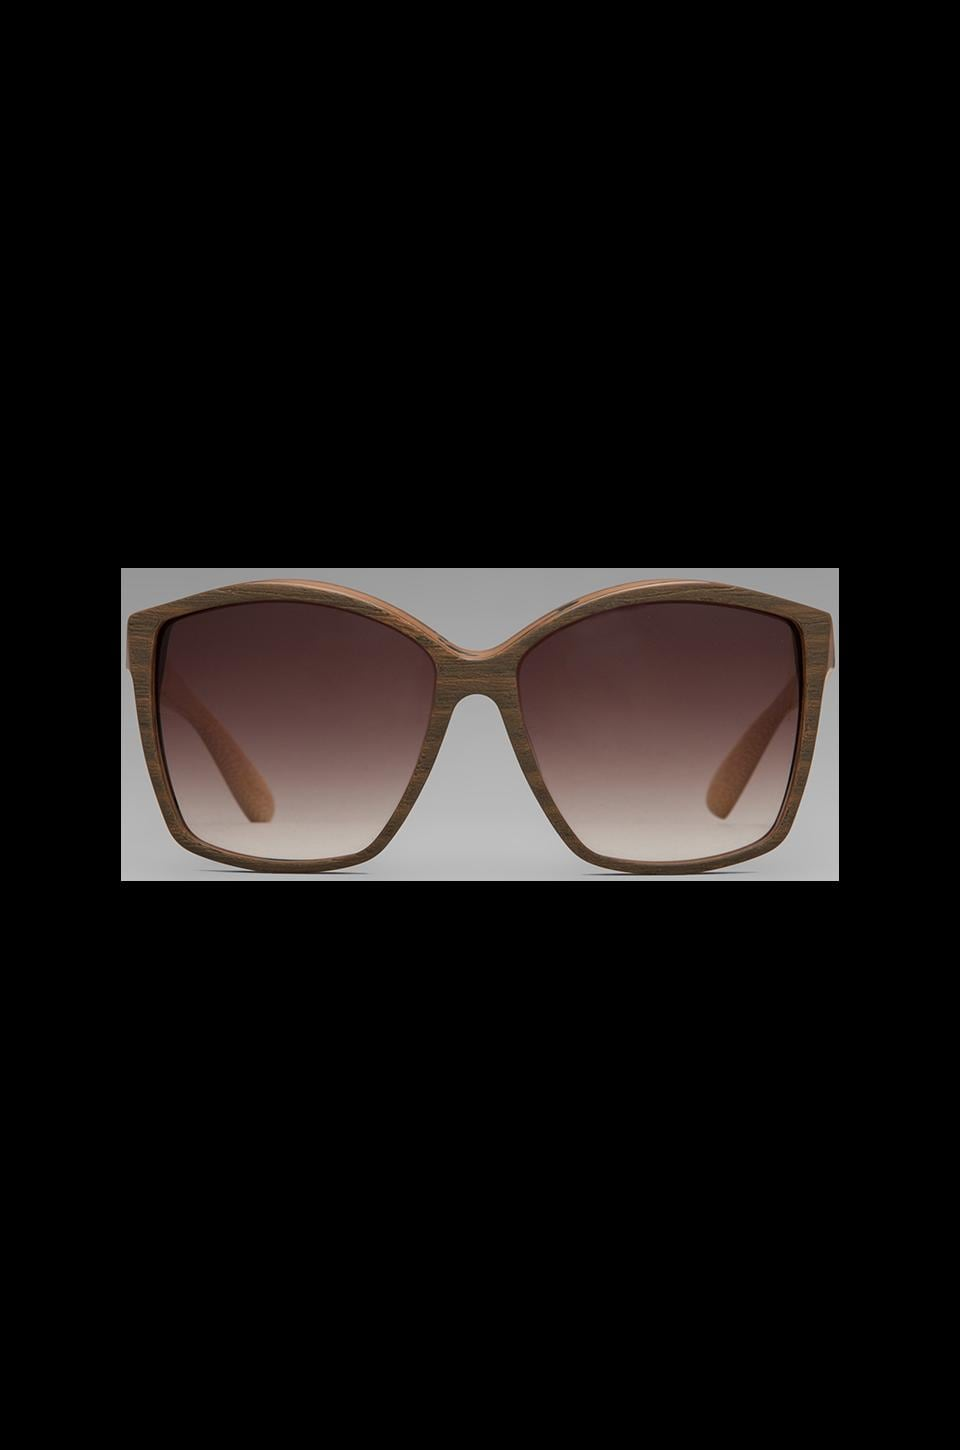 House of Harlow Jordana Sunglasses in Teak